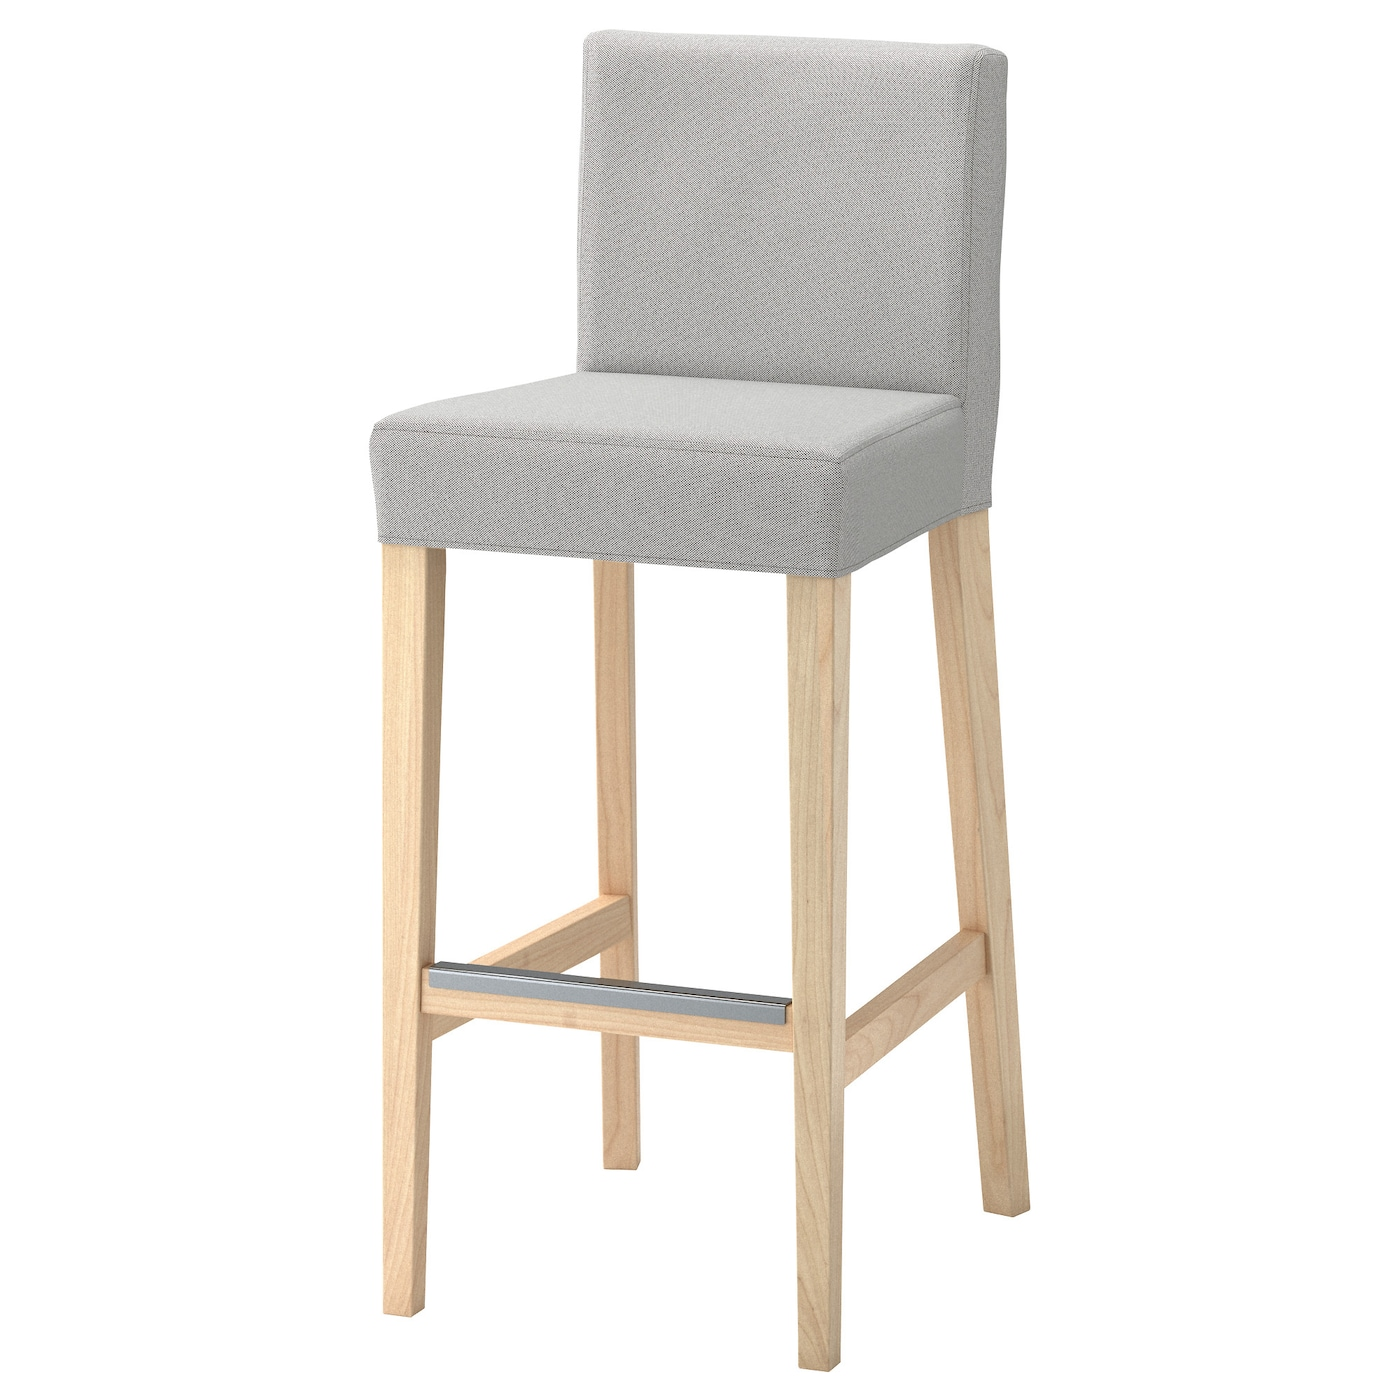 henriksdal bar stool with backrest birch ramna light grey. Black Bedroom Furniture Sets. Home Design Ideas